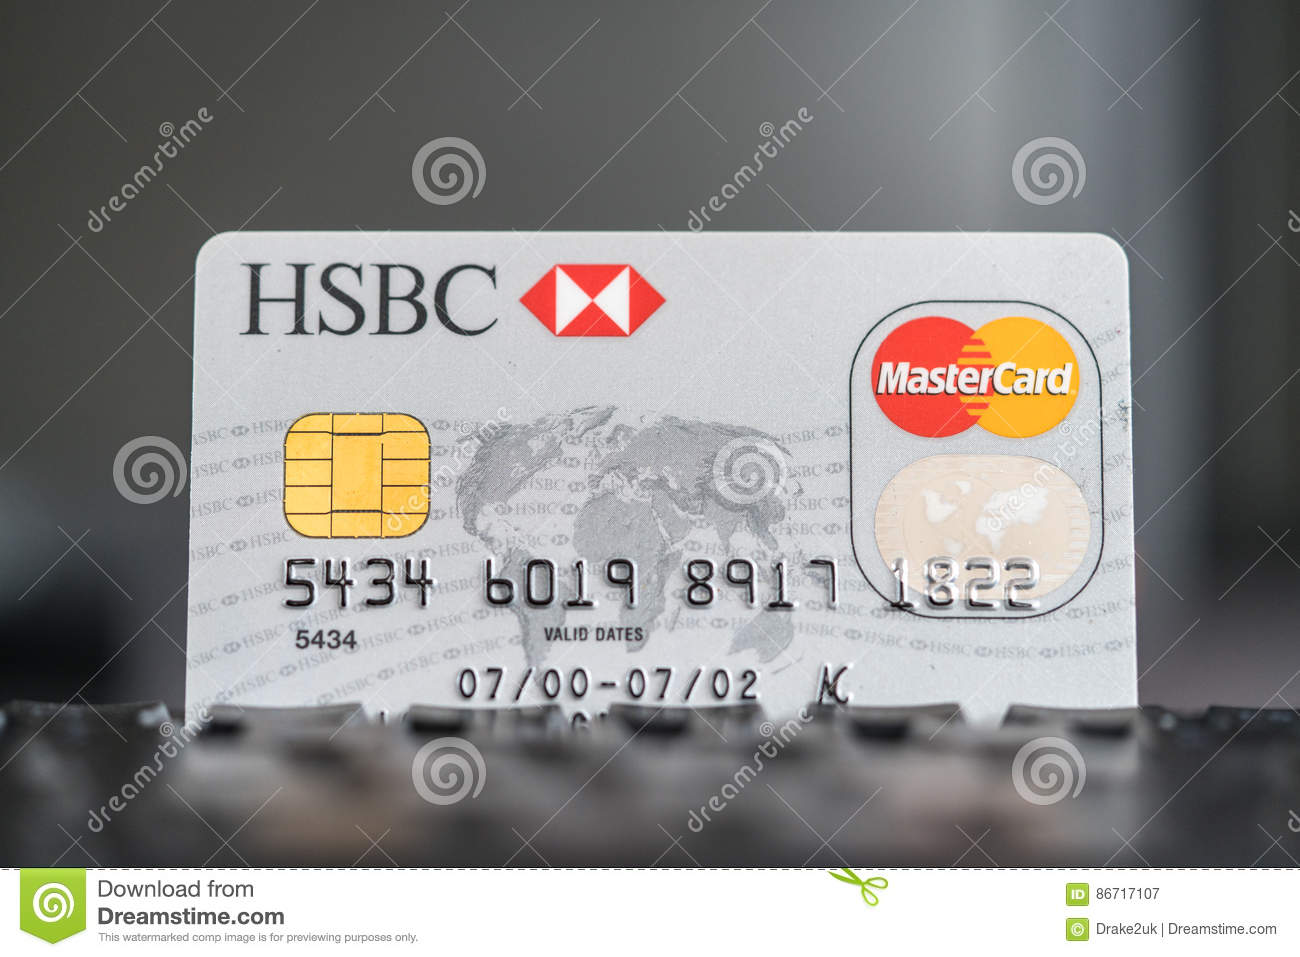 Comerica Business Credit Card Login Gallery - Business Card Template